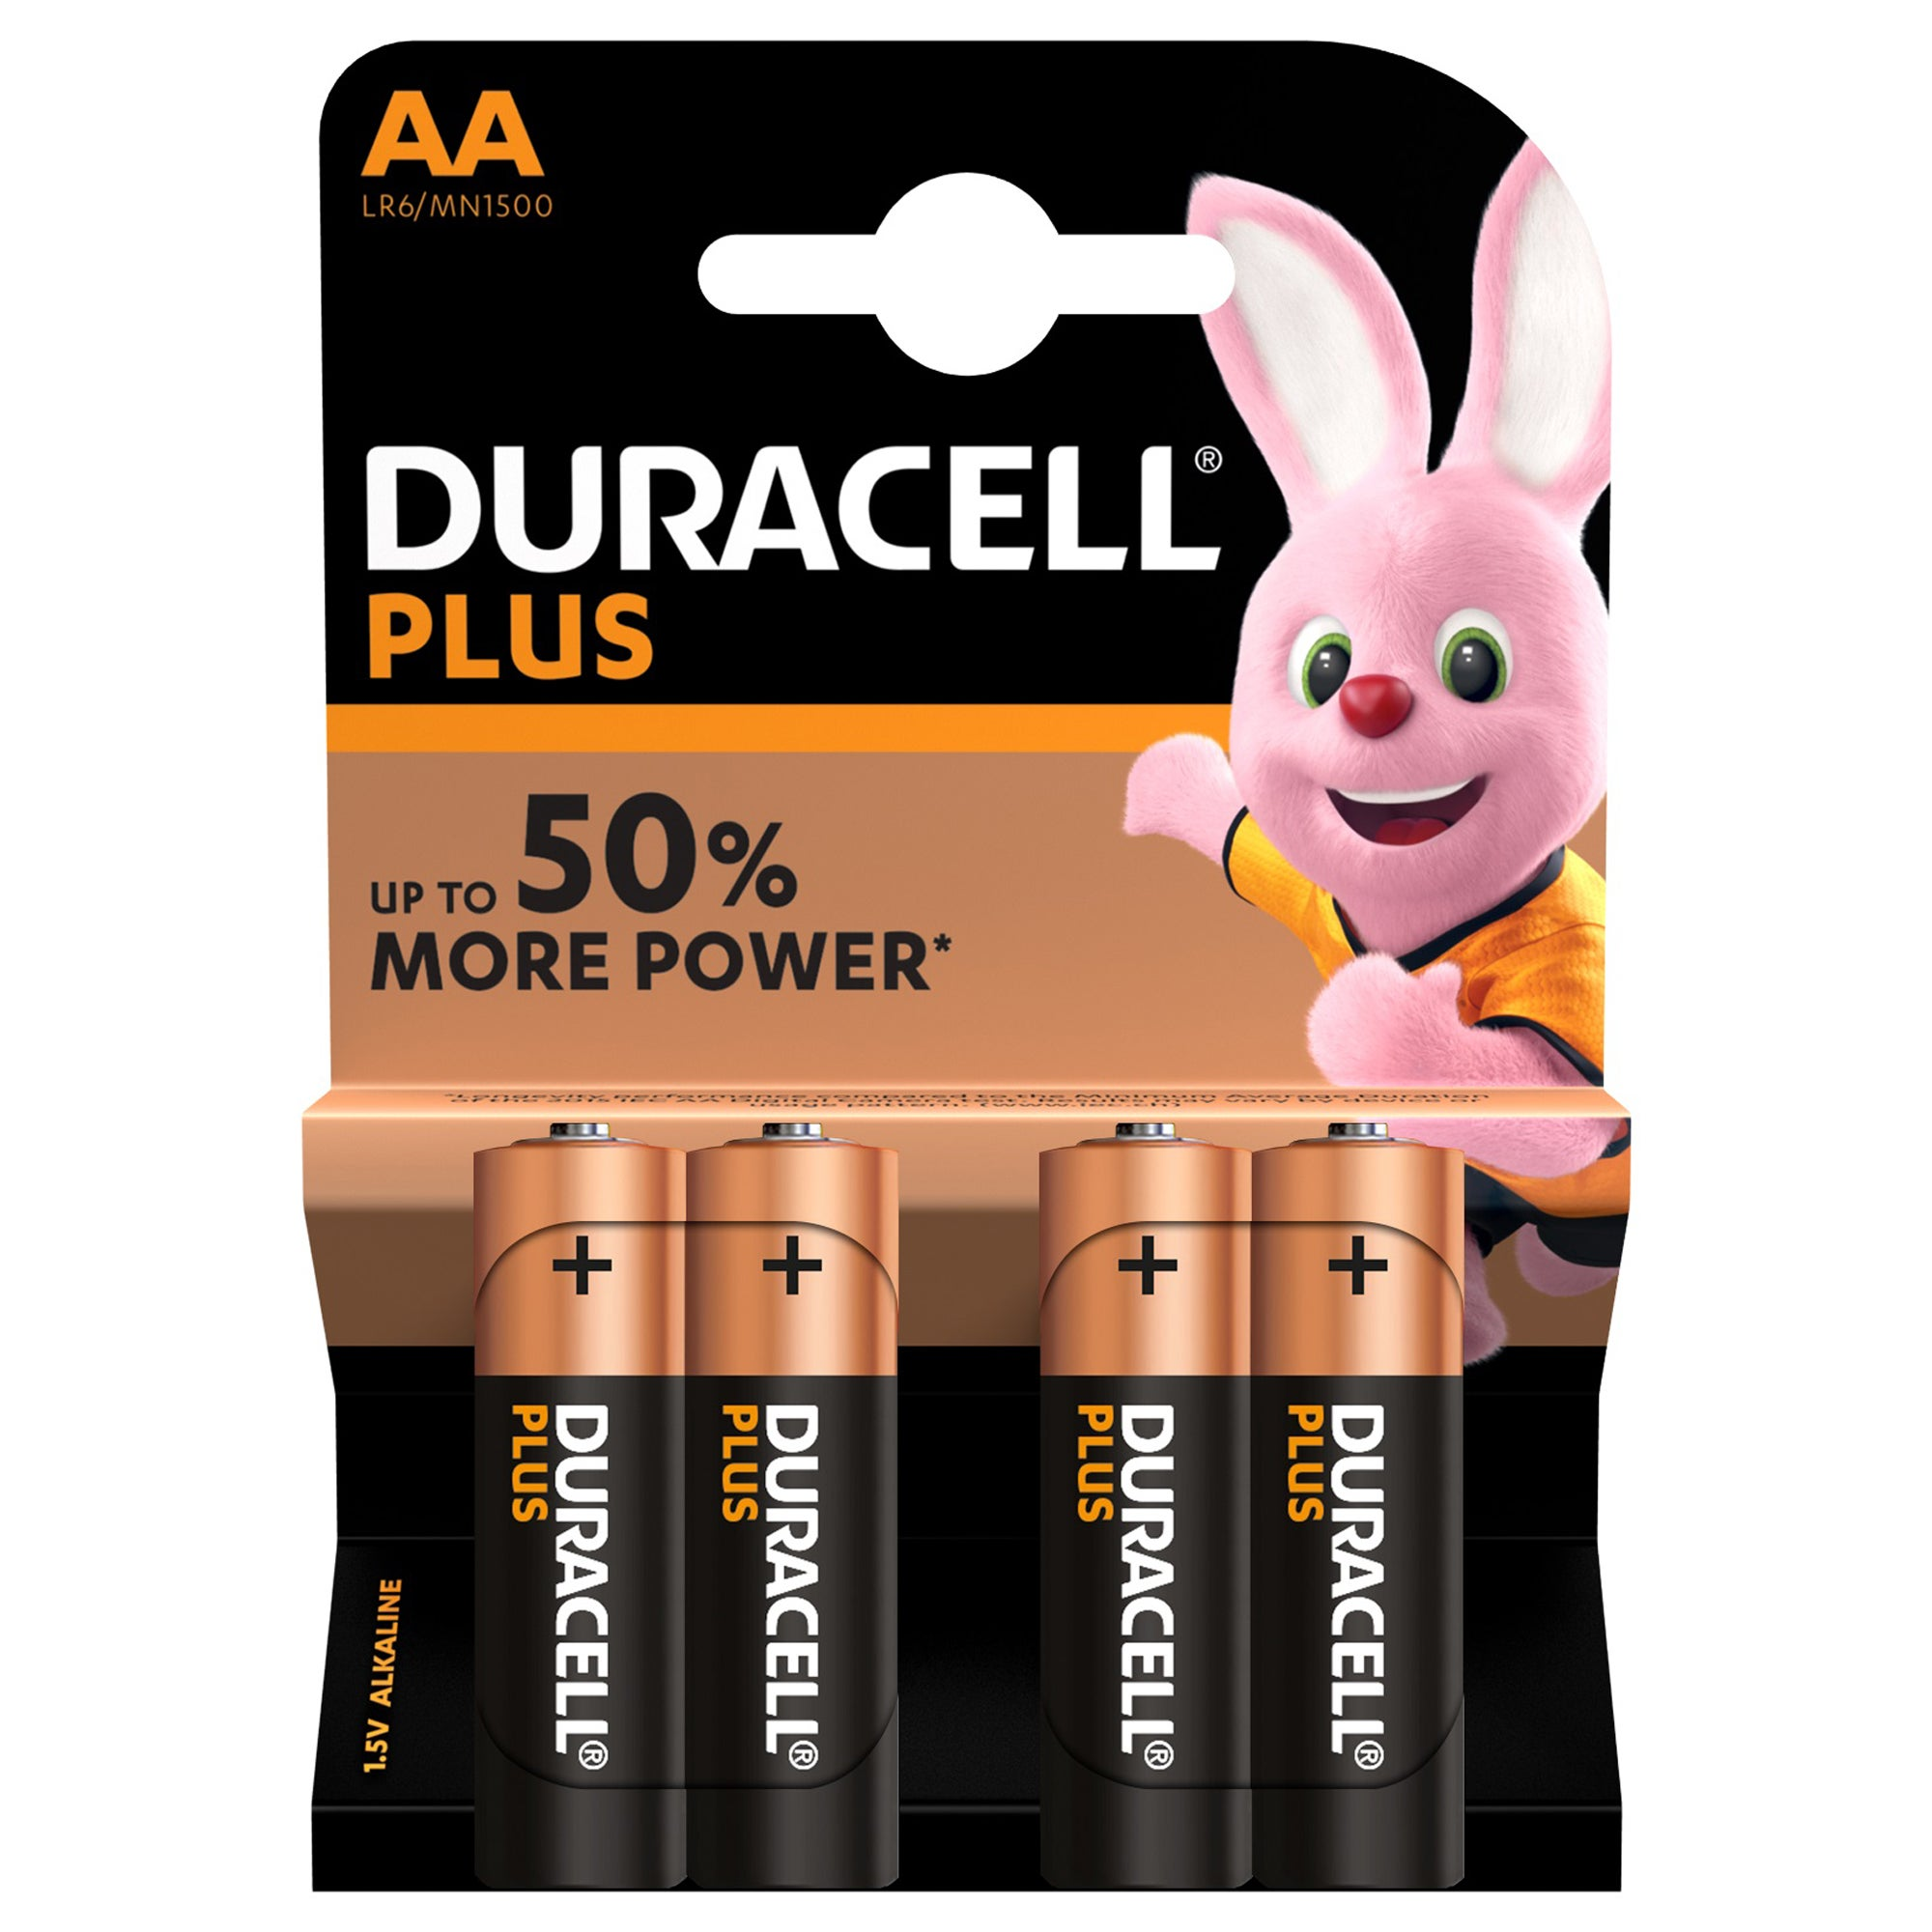 Duracell Pack of 4 Plus AA Batteries Multi Coloured